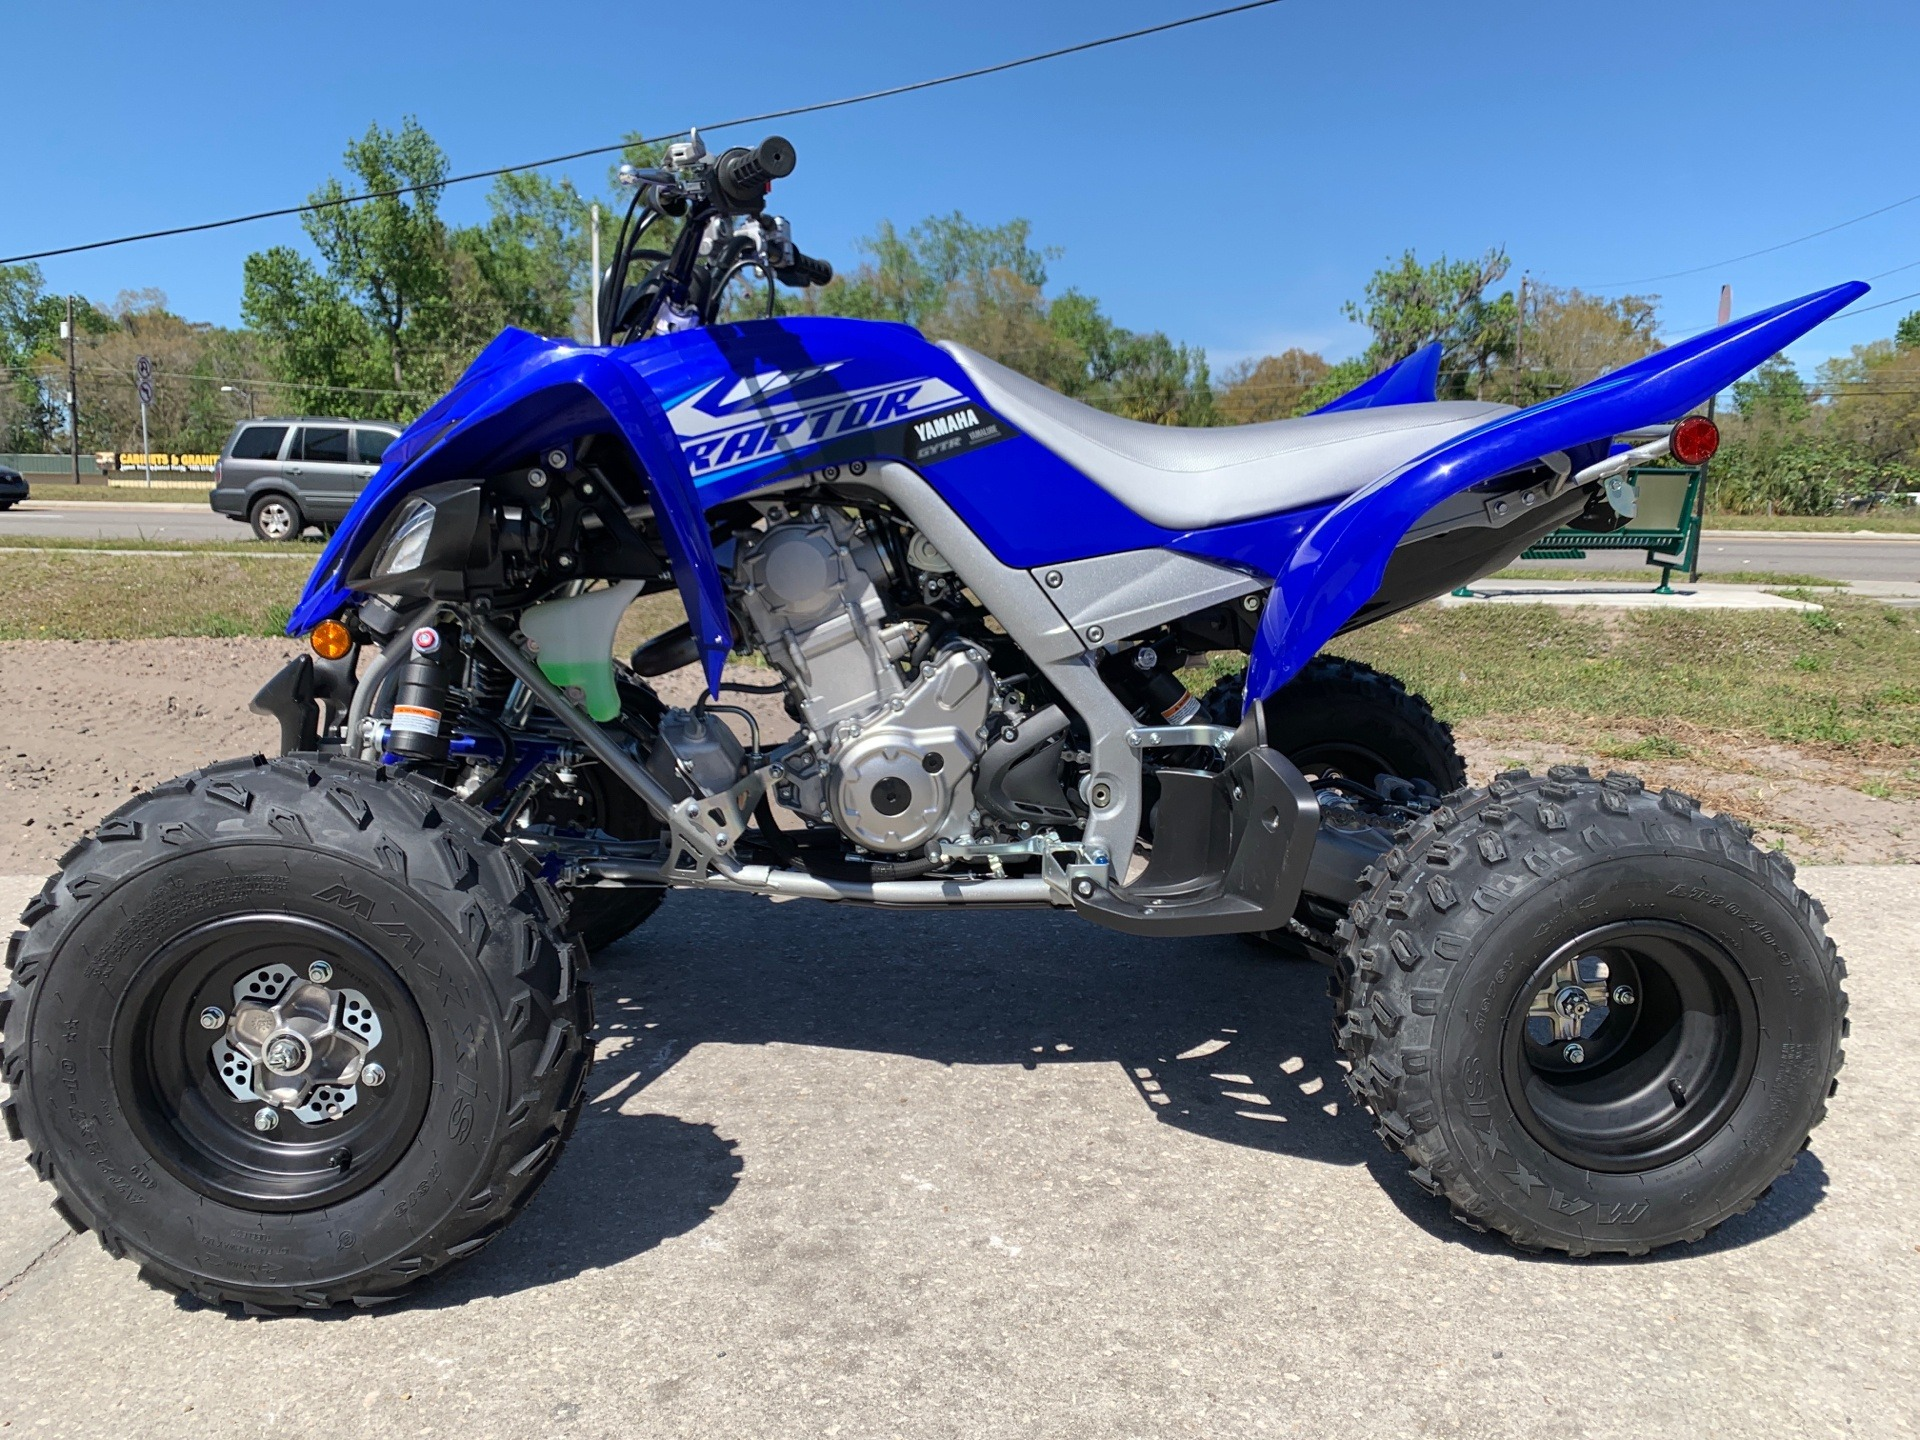 2020 Yamaha Raptor 700R in Orlando, Florida - Photo 1